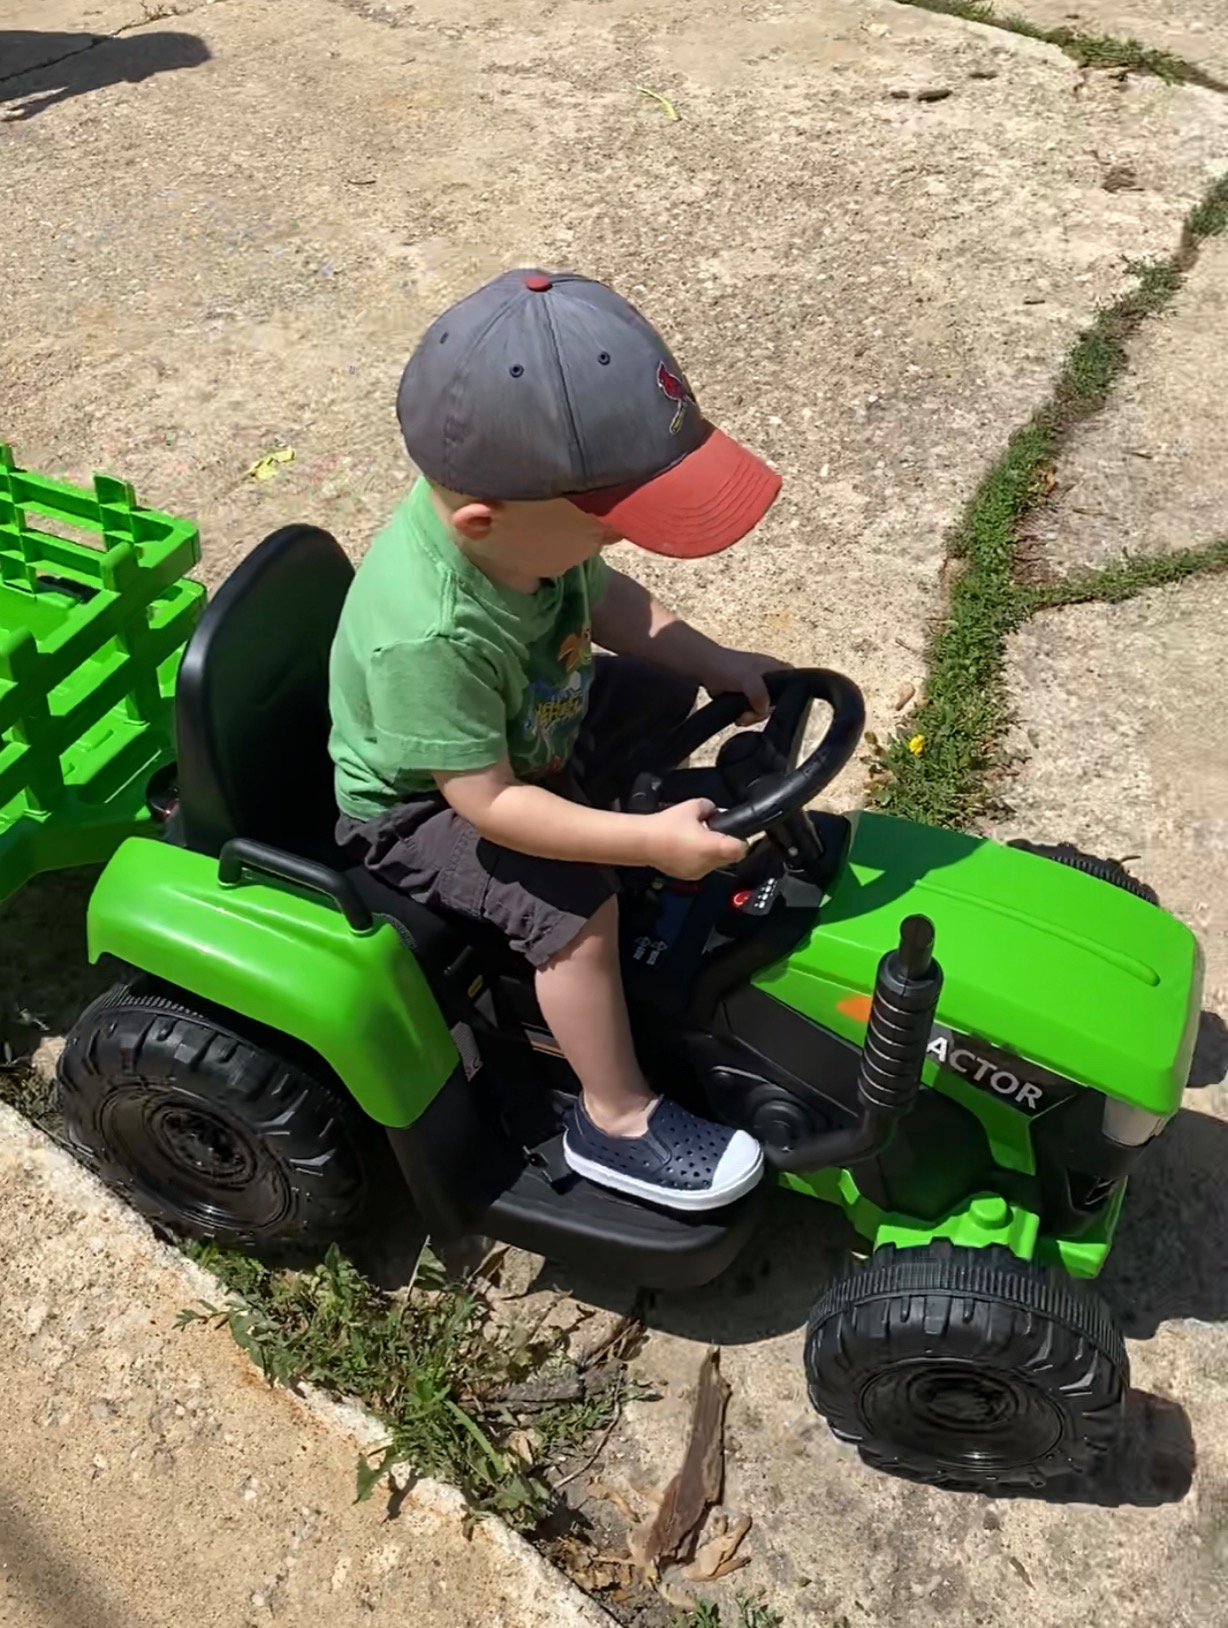 12V Electric Kids Ride-On Tractor with Trailer, Green photo review